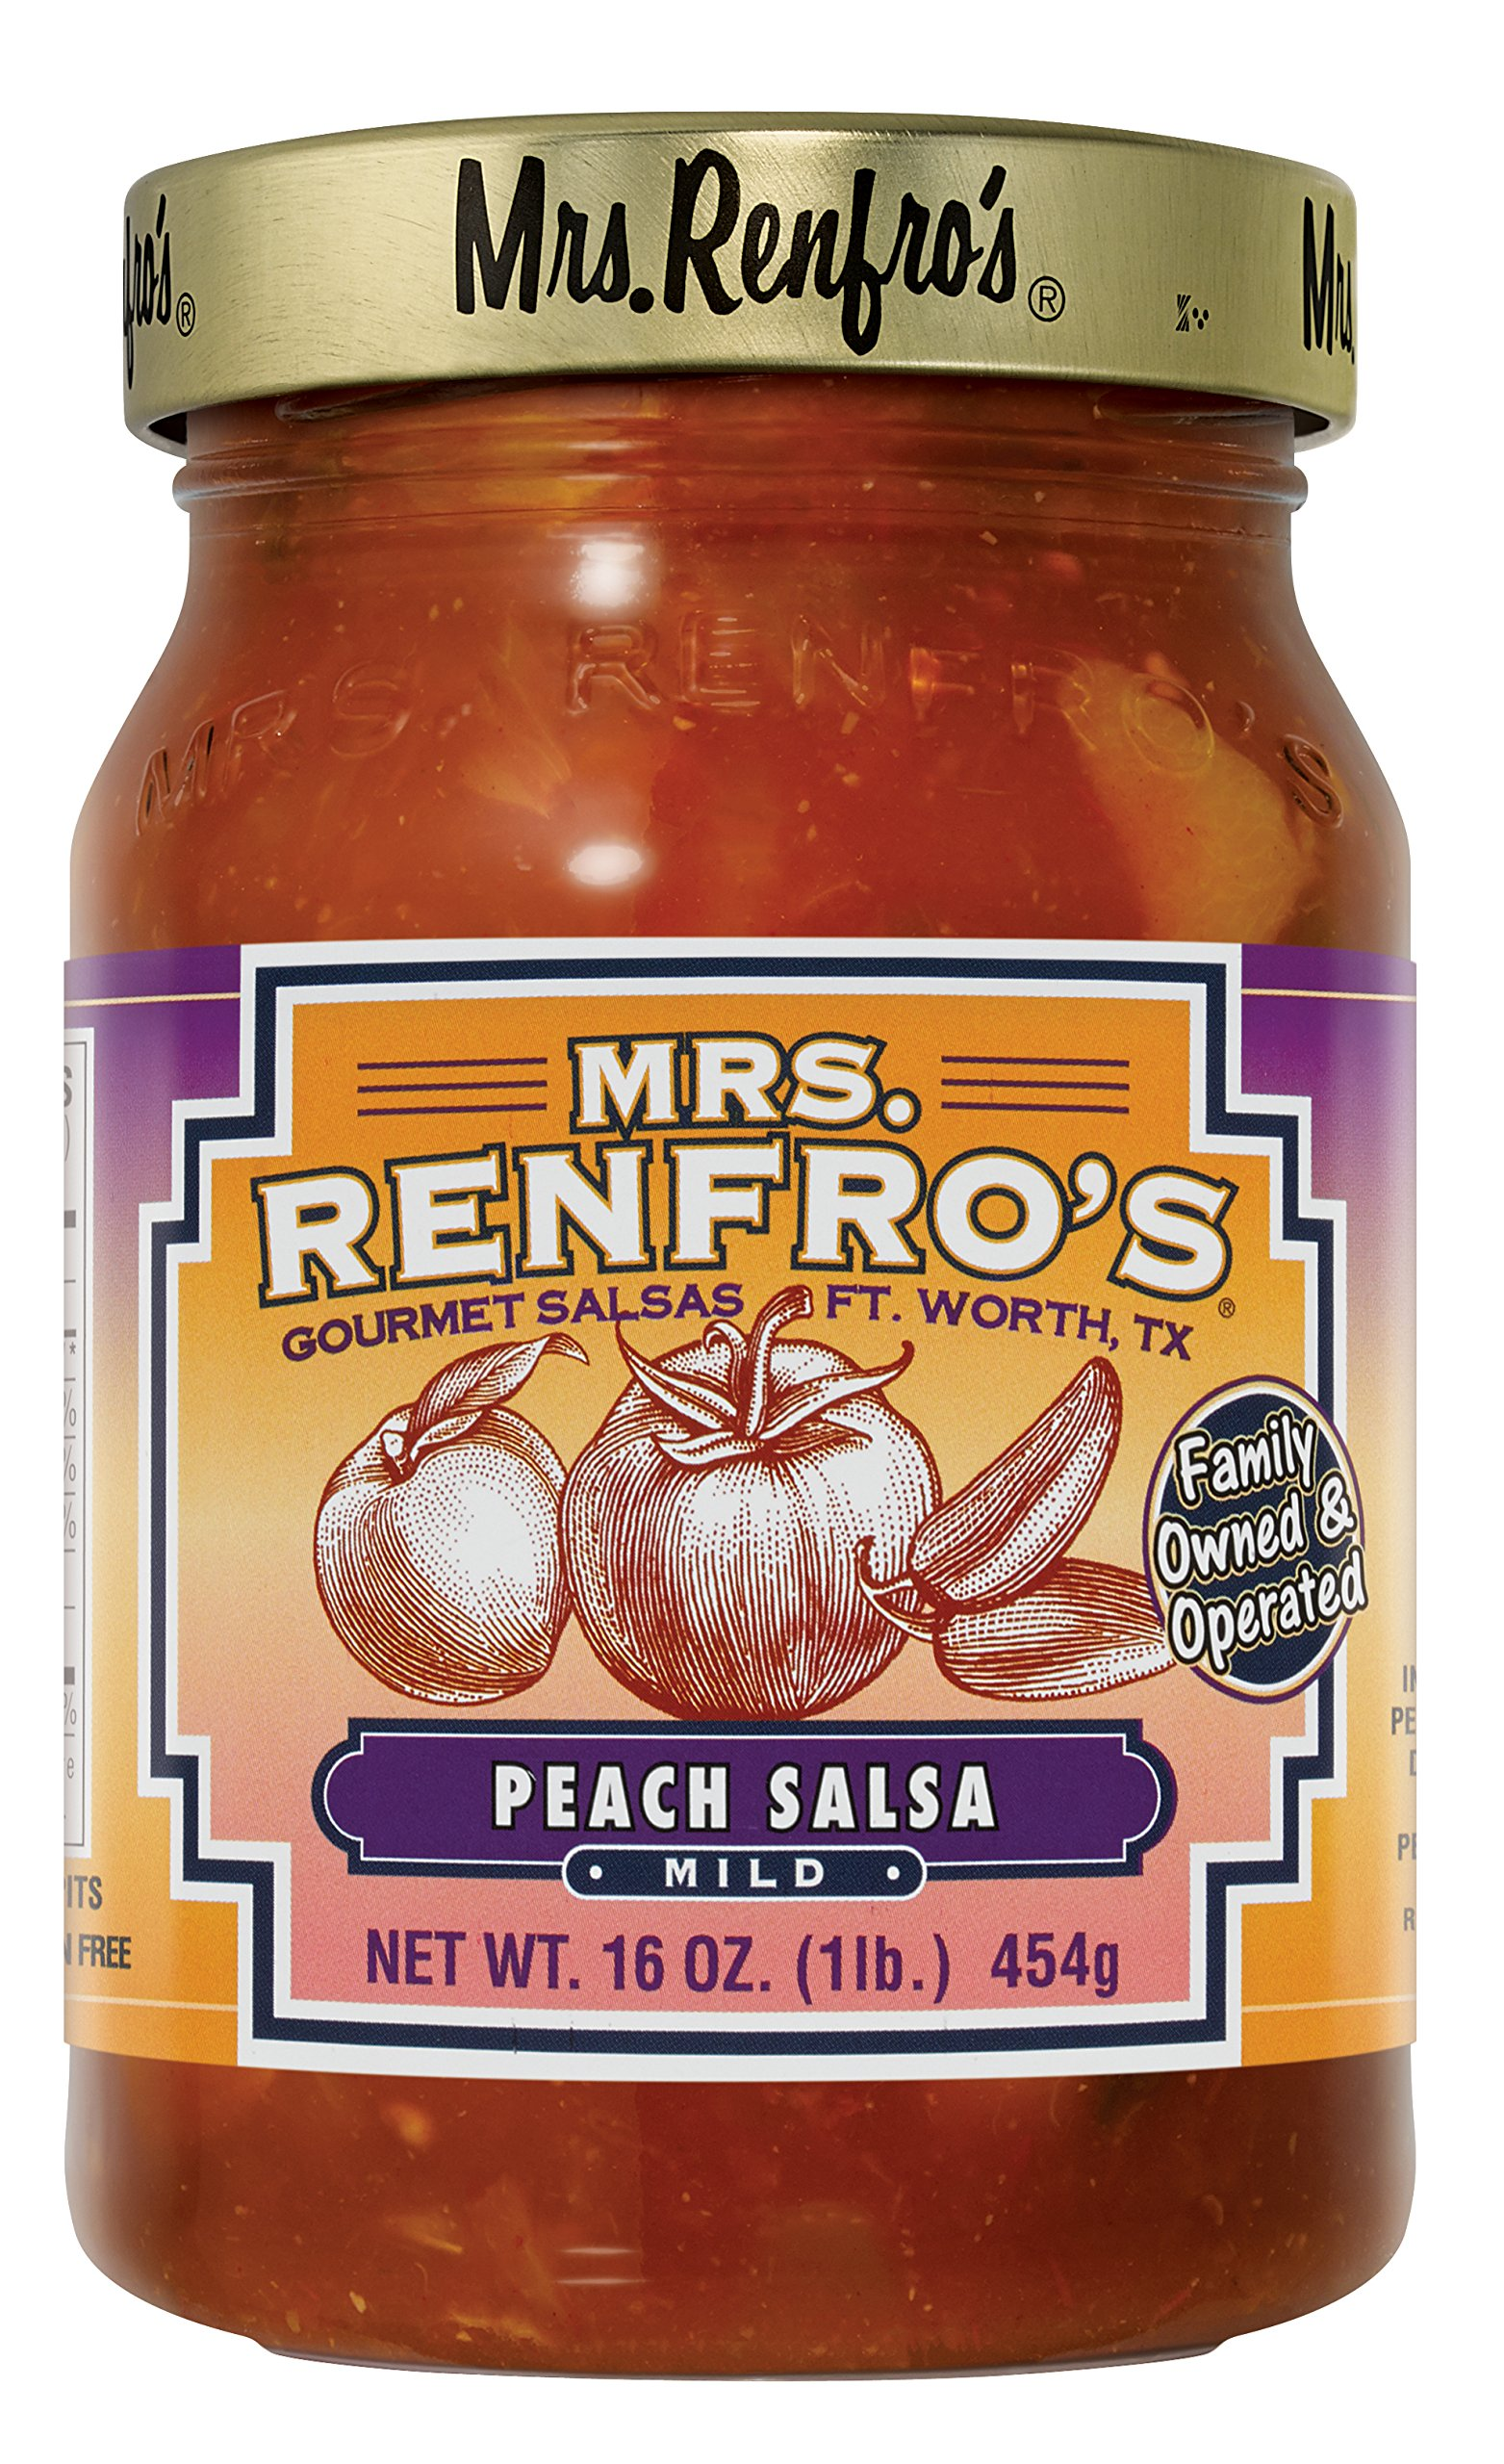 Mrs. Renfros Peach Salsa - 2jar pack